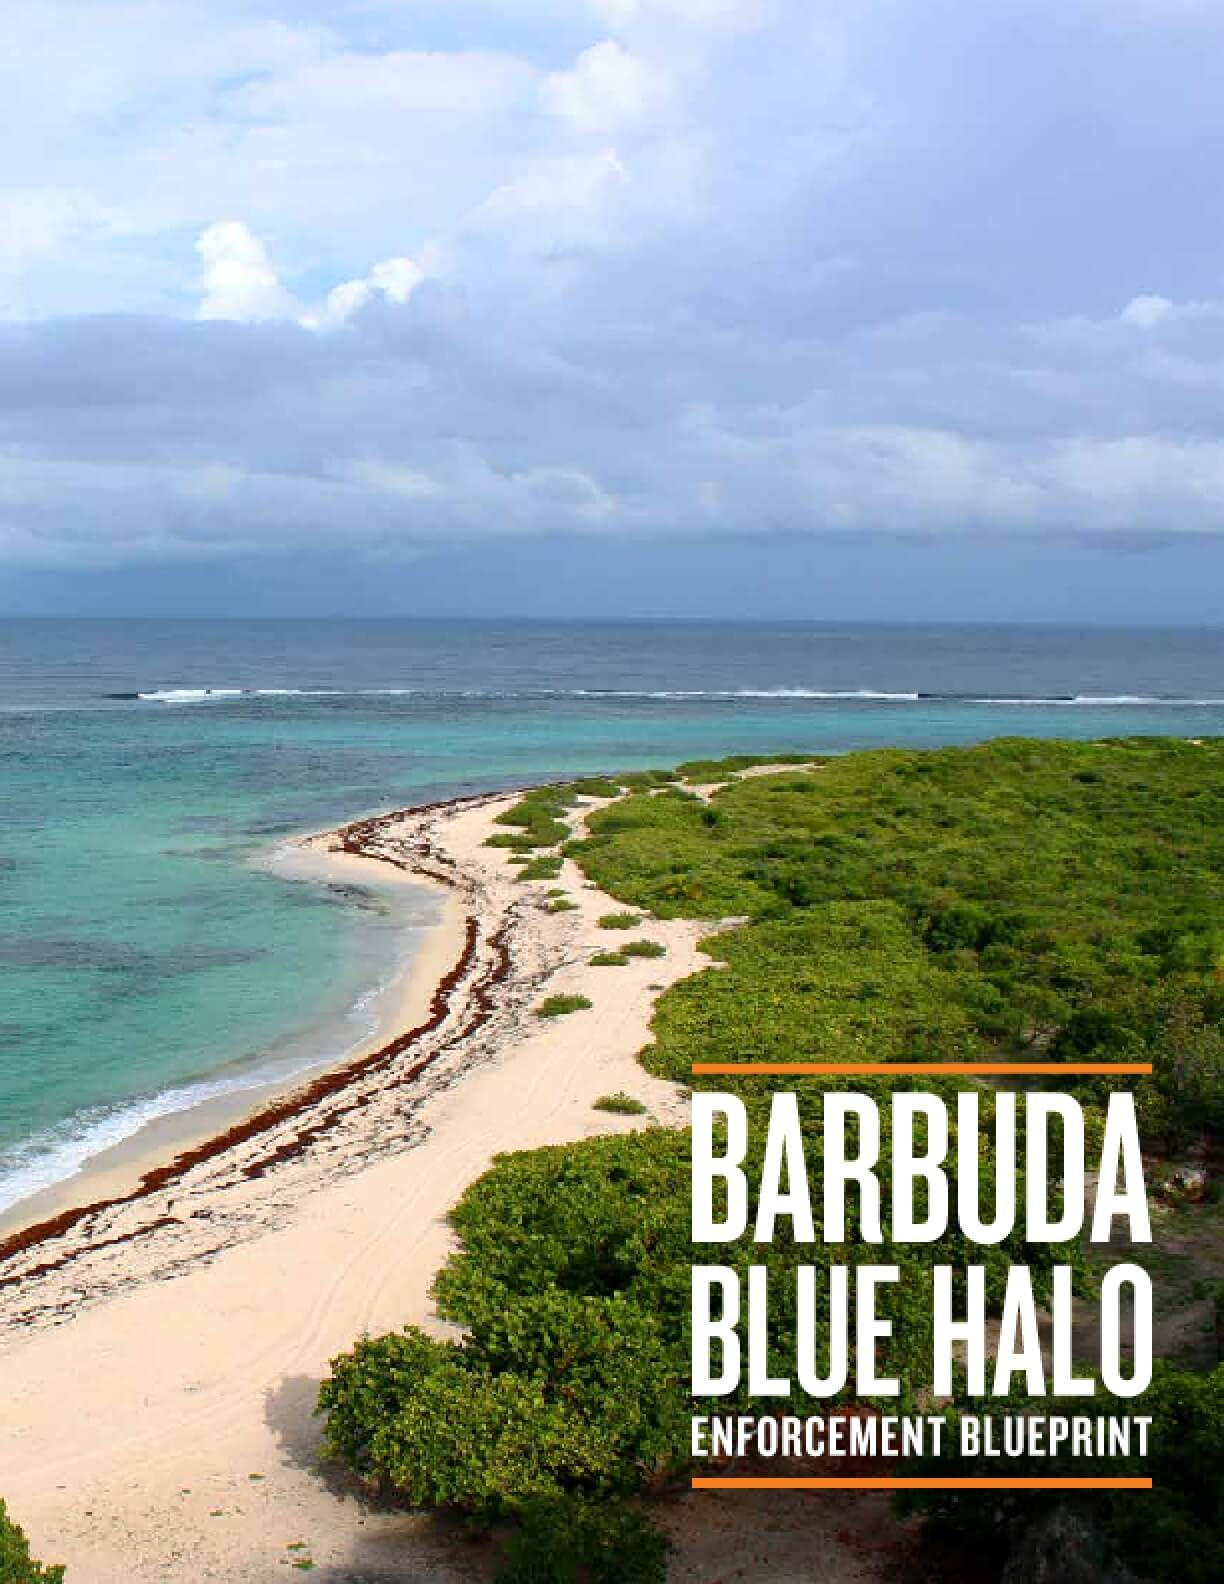 Barbuda Blue Halo Enforcement Blueprint